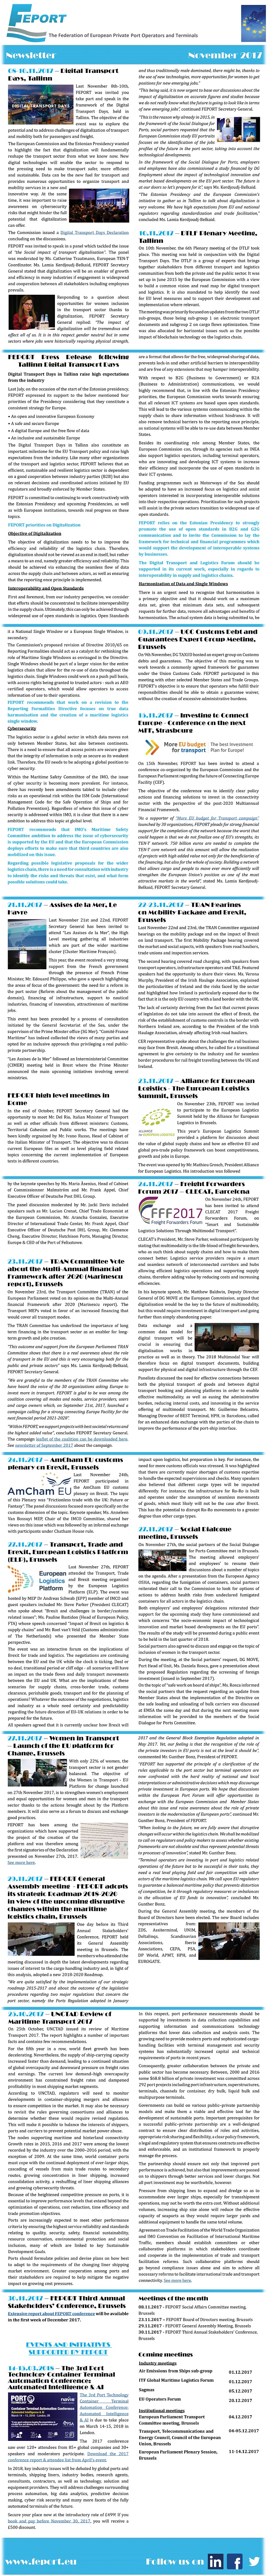 FEPORT External Newsletter November 2017alls